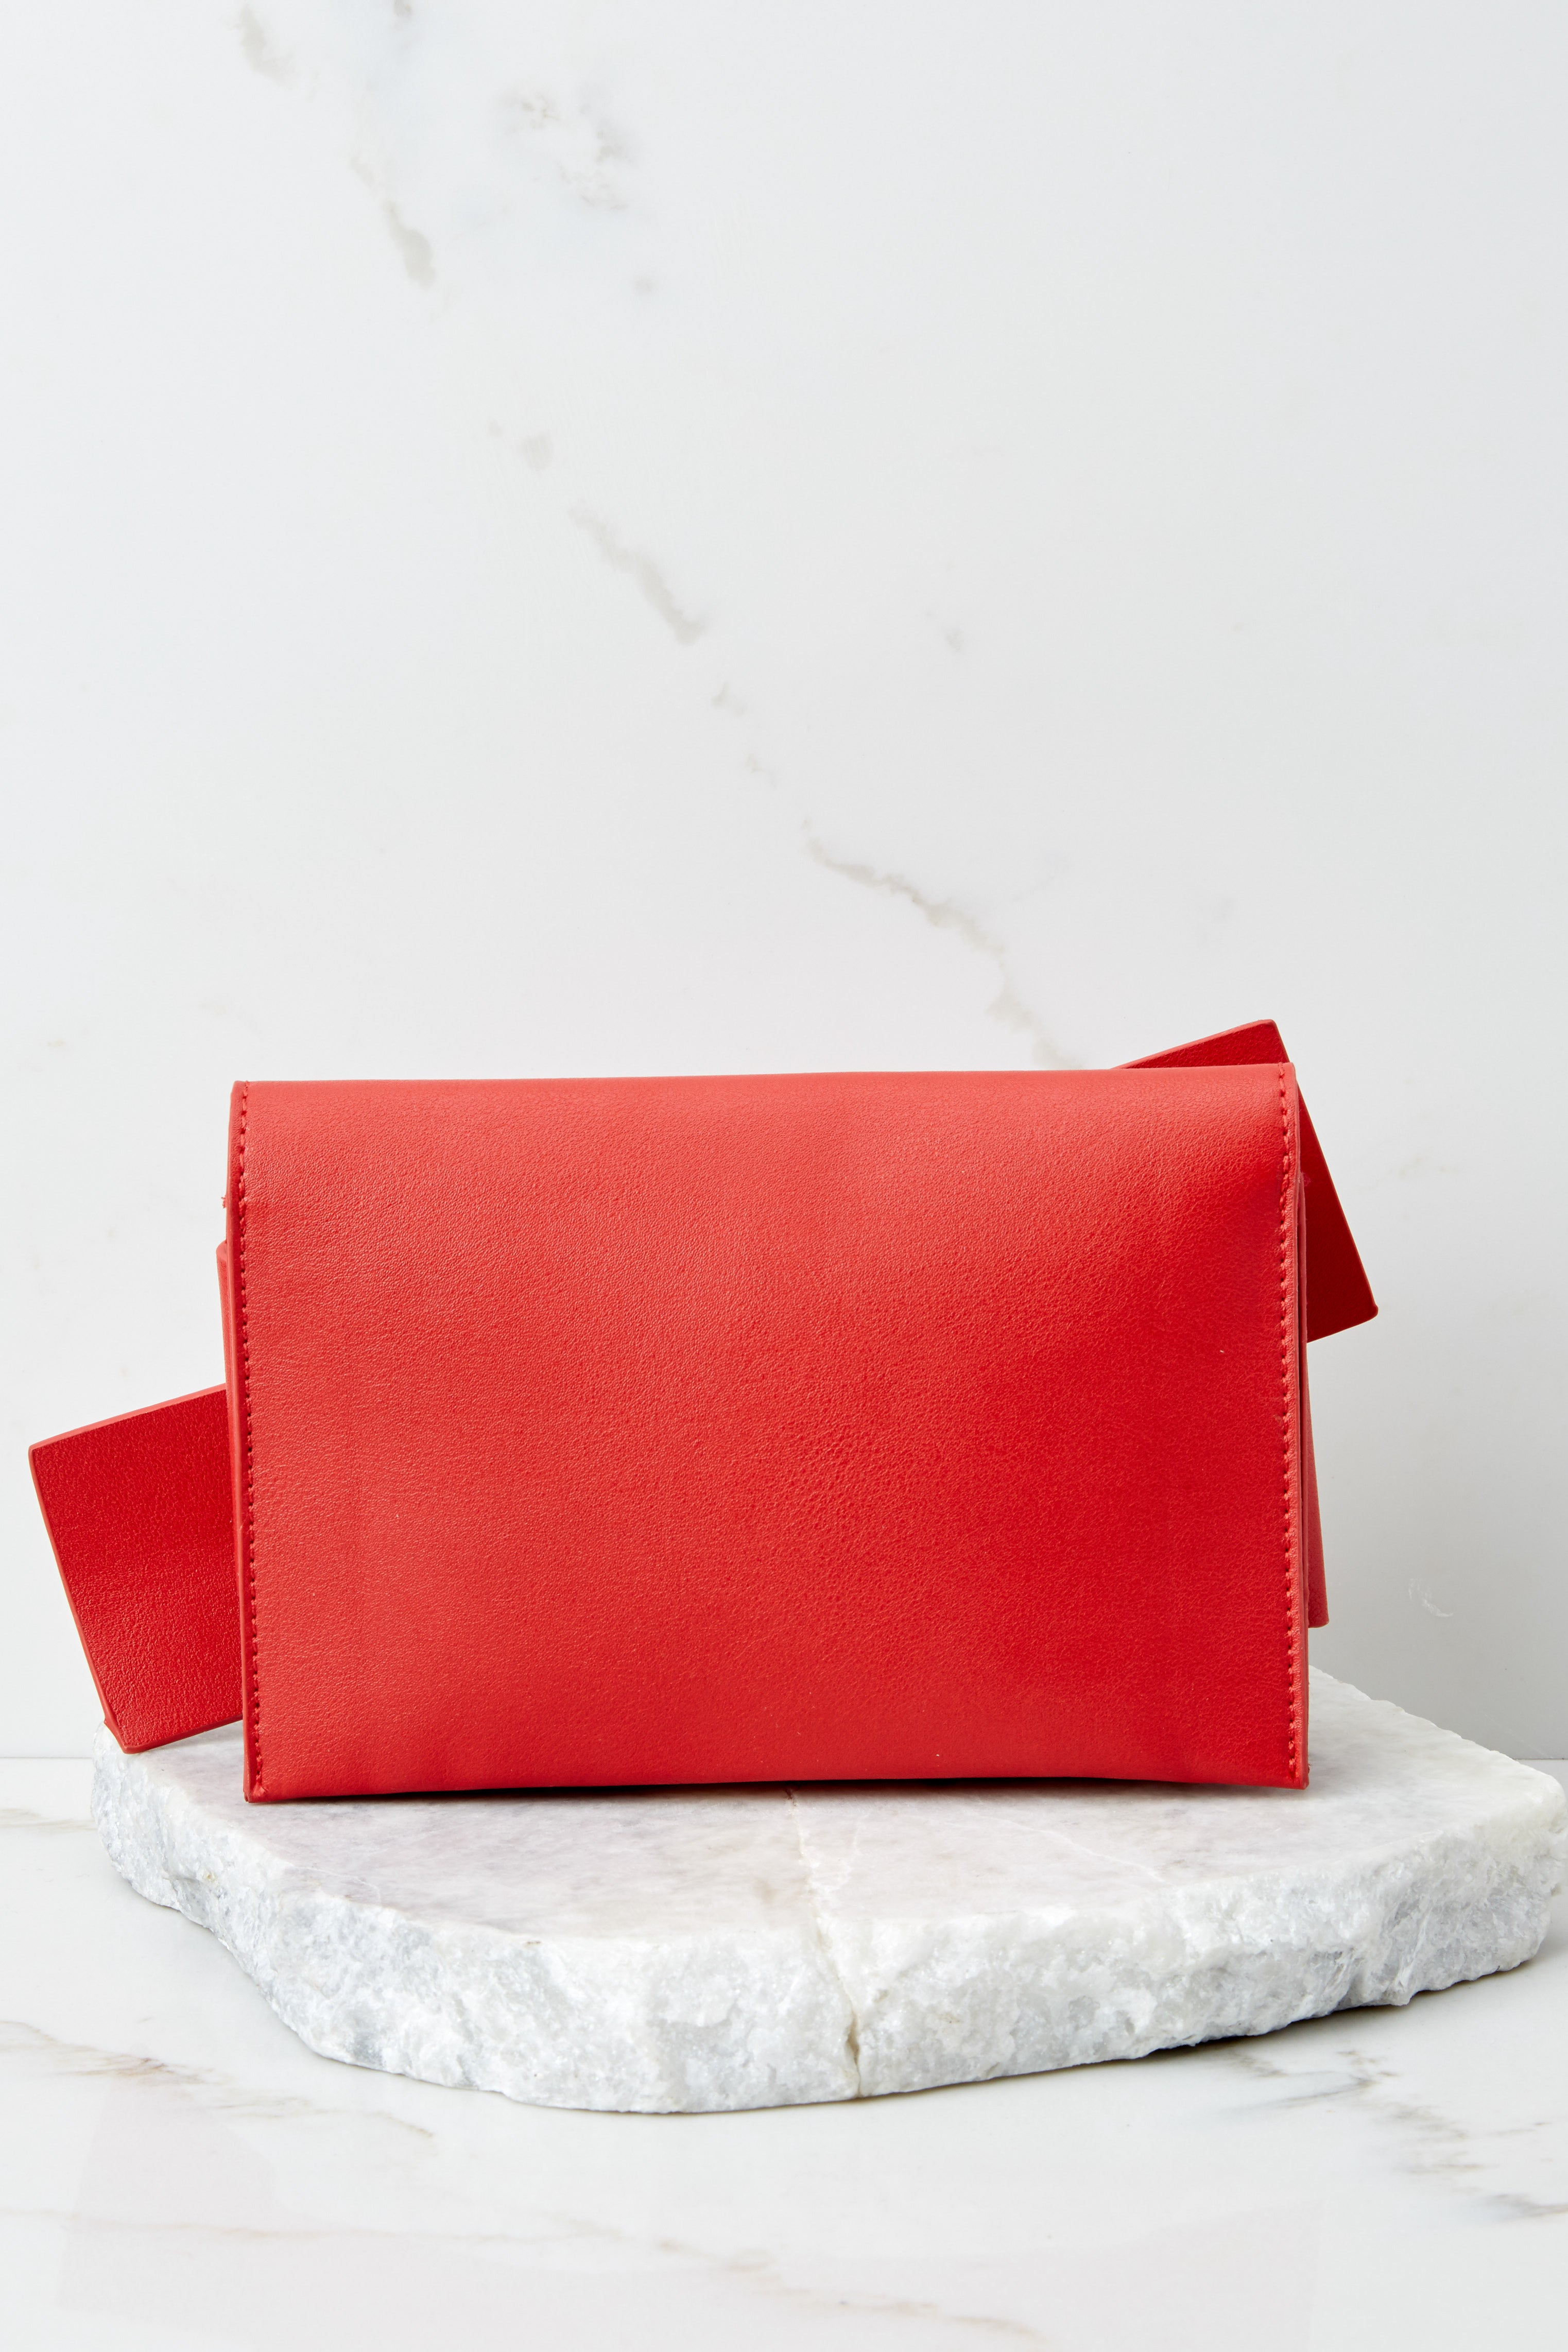 5 Make It Even Red Clutch, at reddress.com